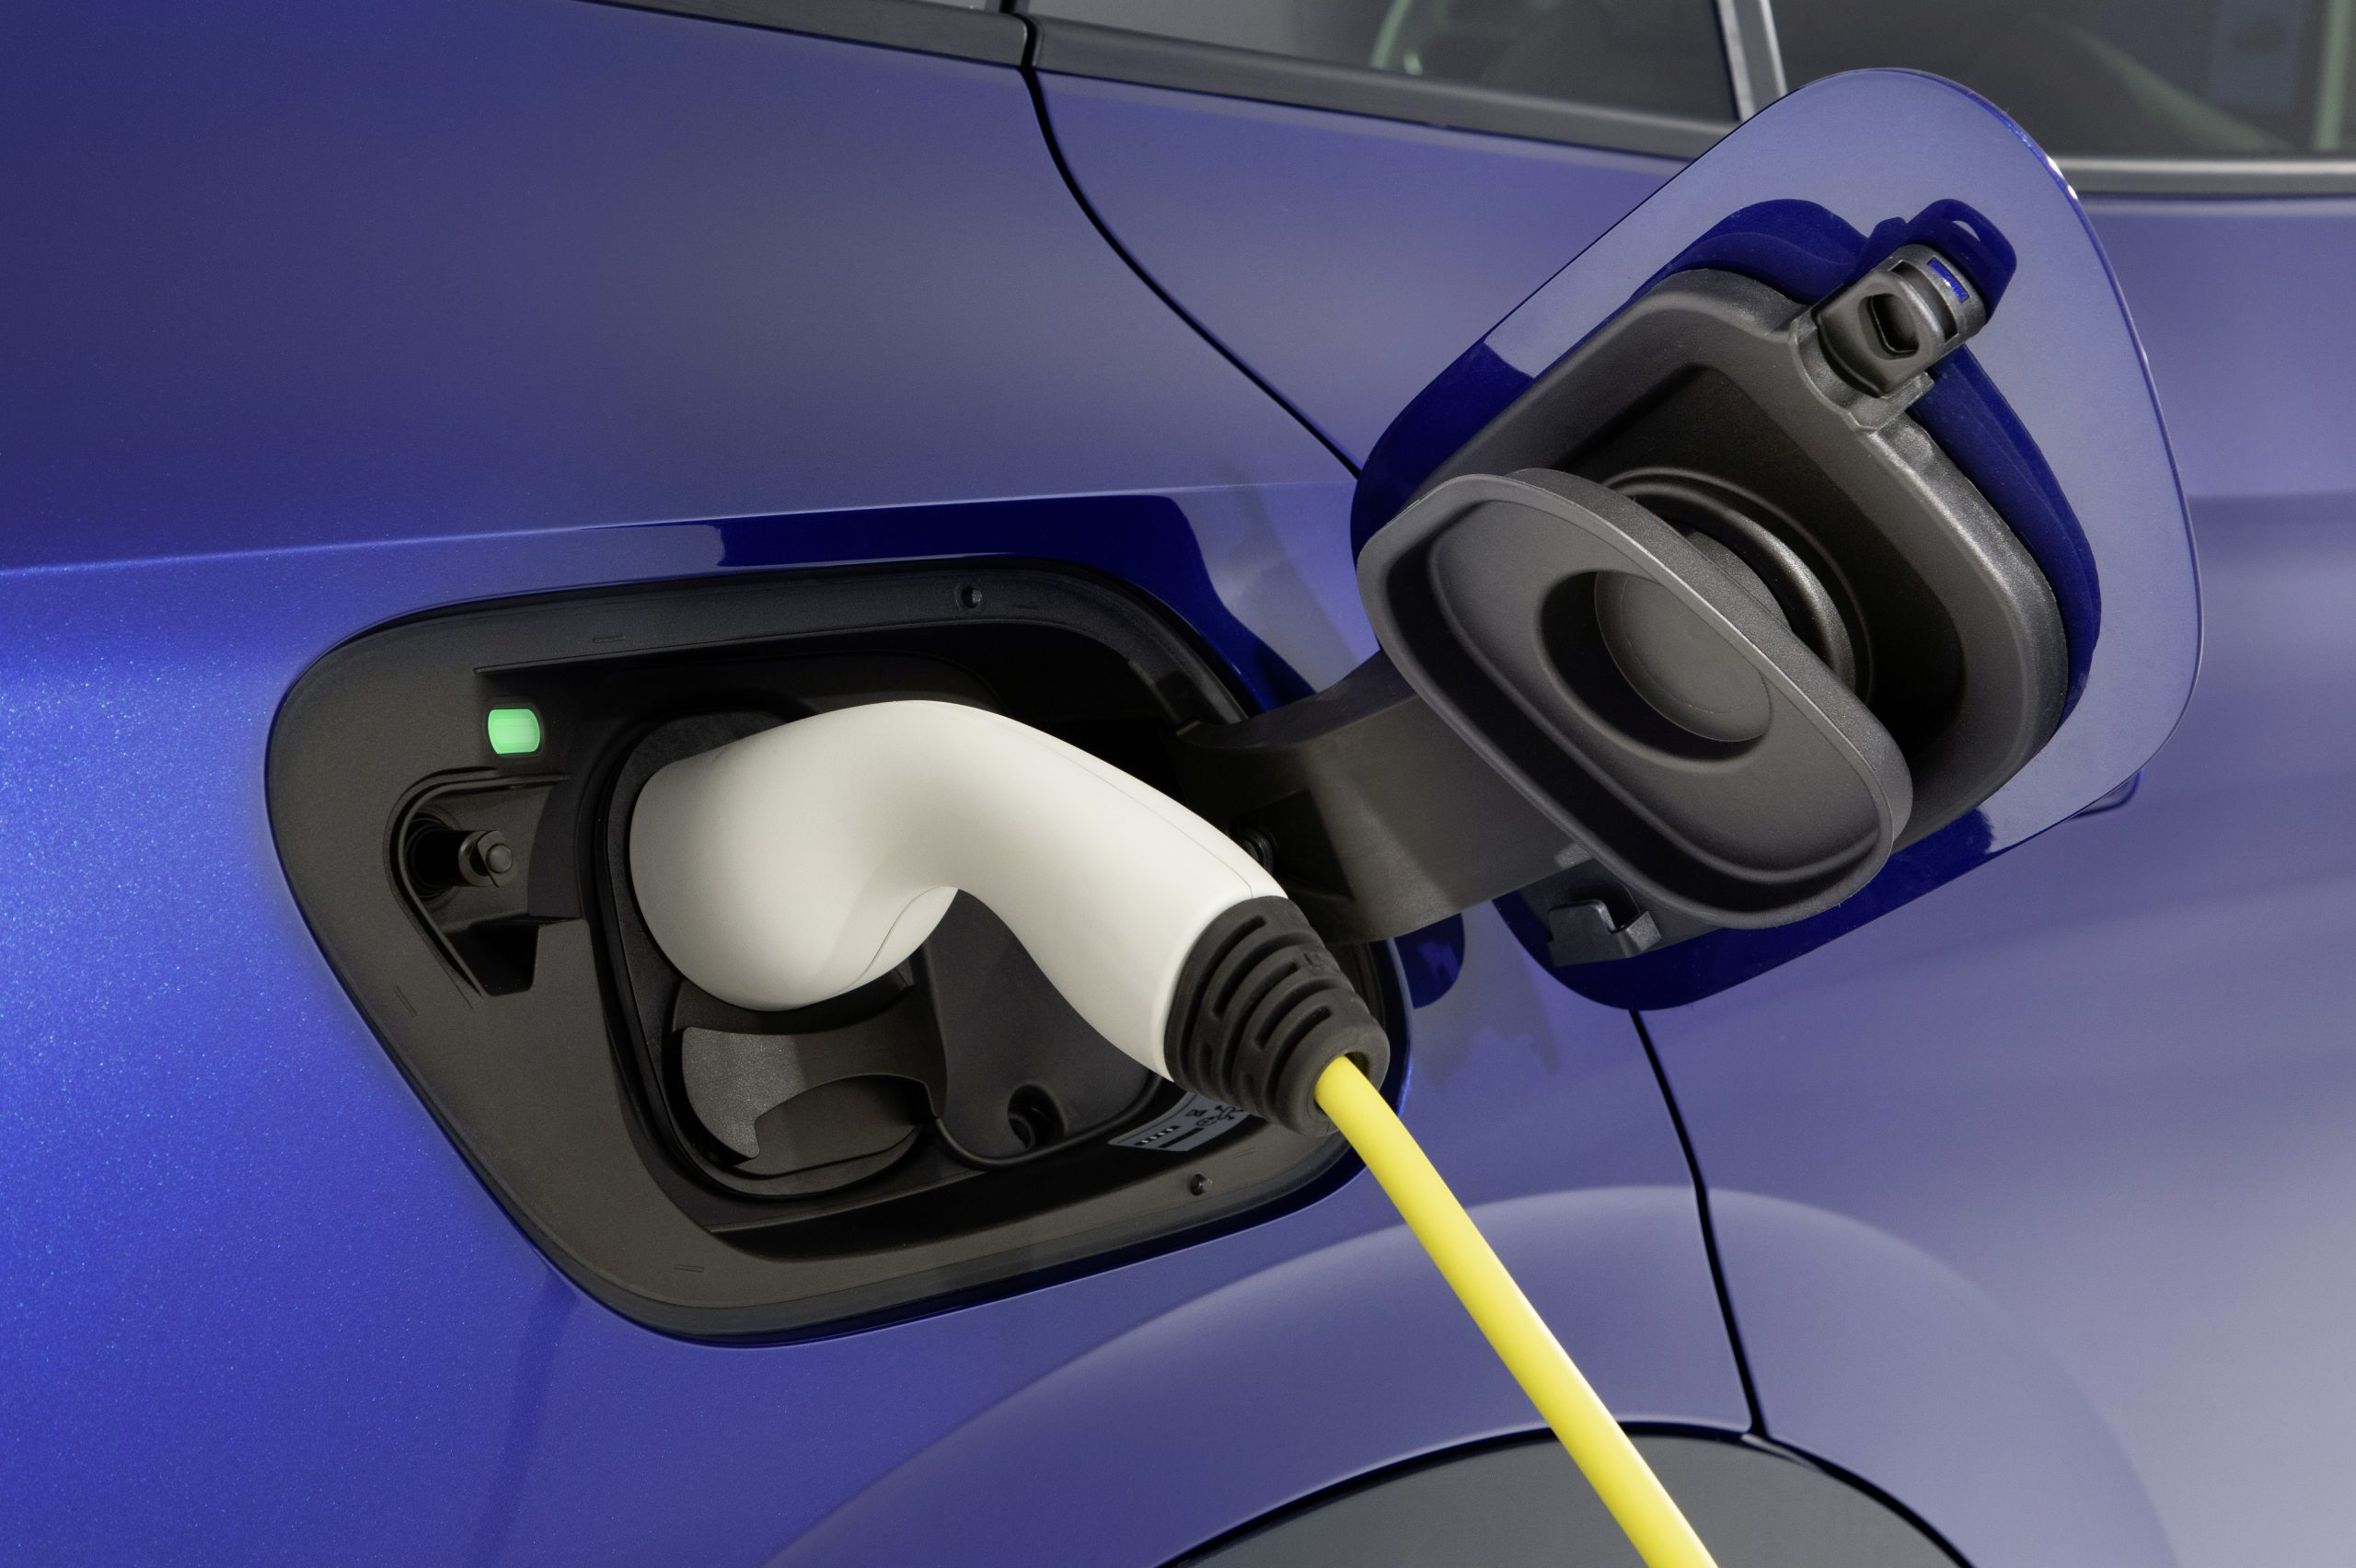 2021 VW ID4 charger